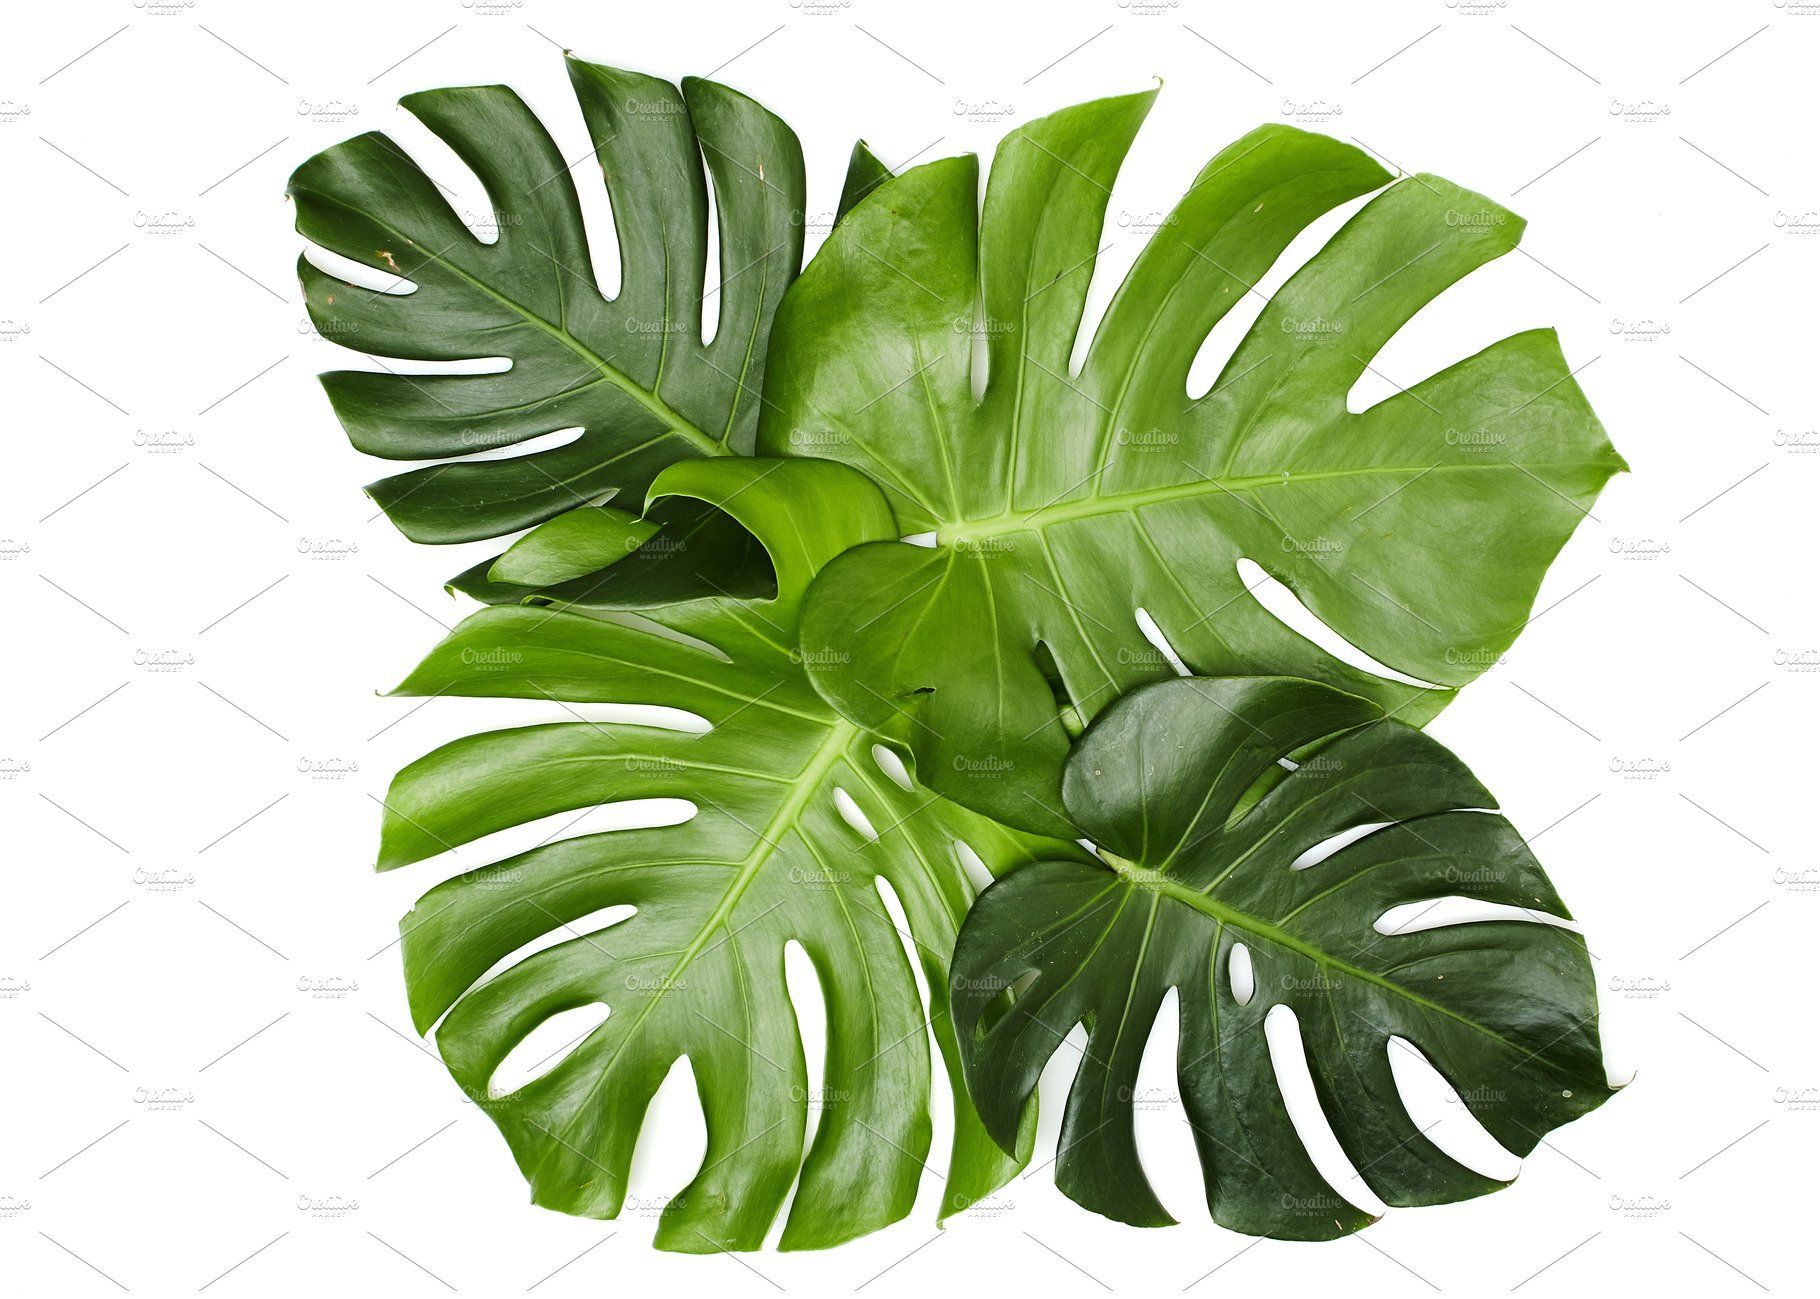 Monstera Leaves On White Background Tree Photoshop Trees Top View Architecture Collage